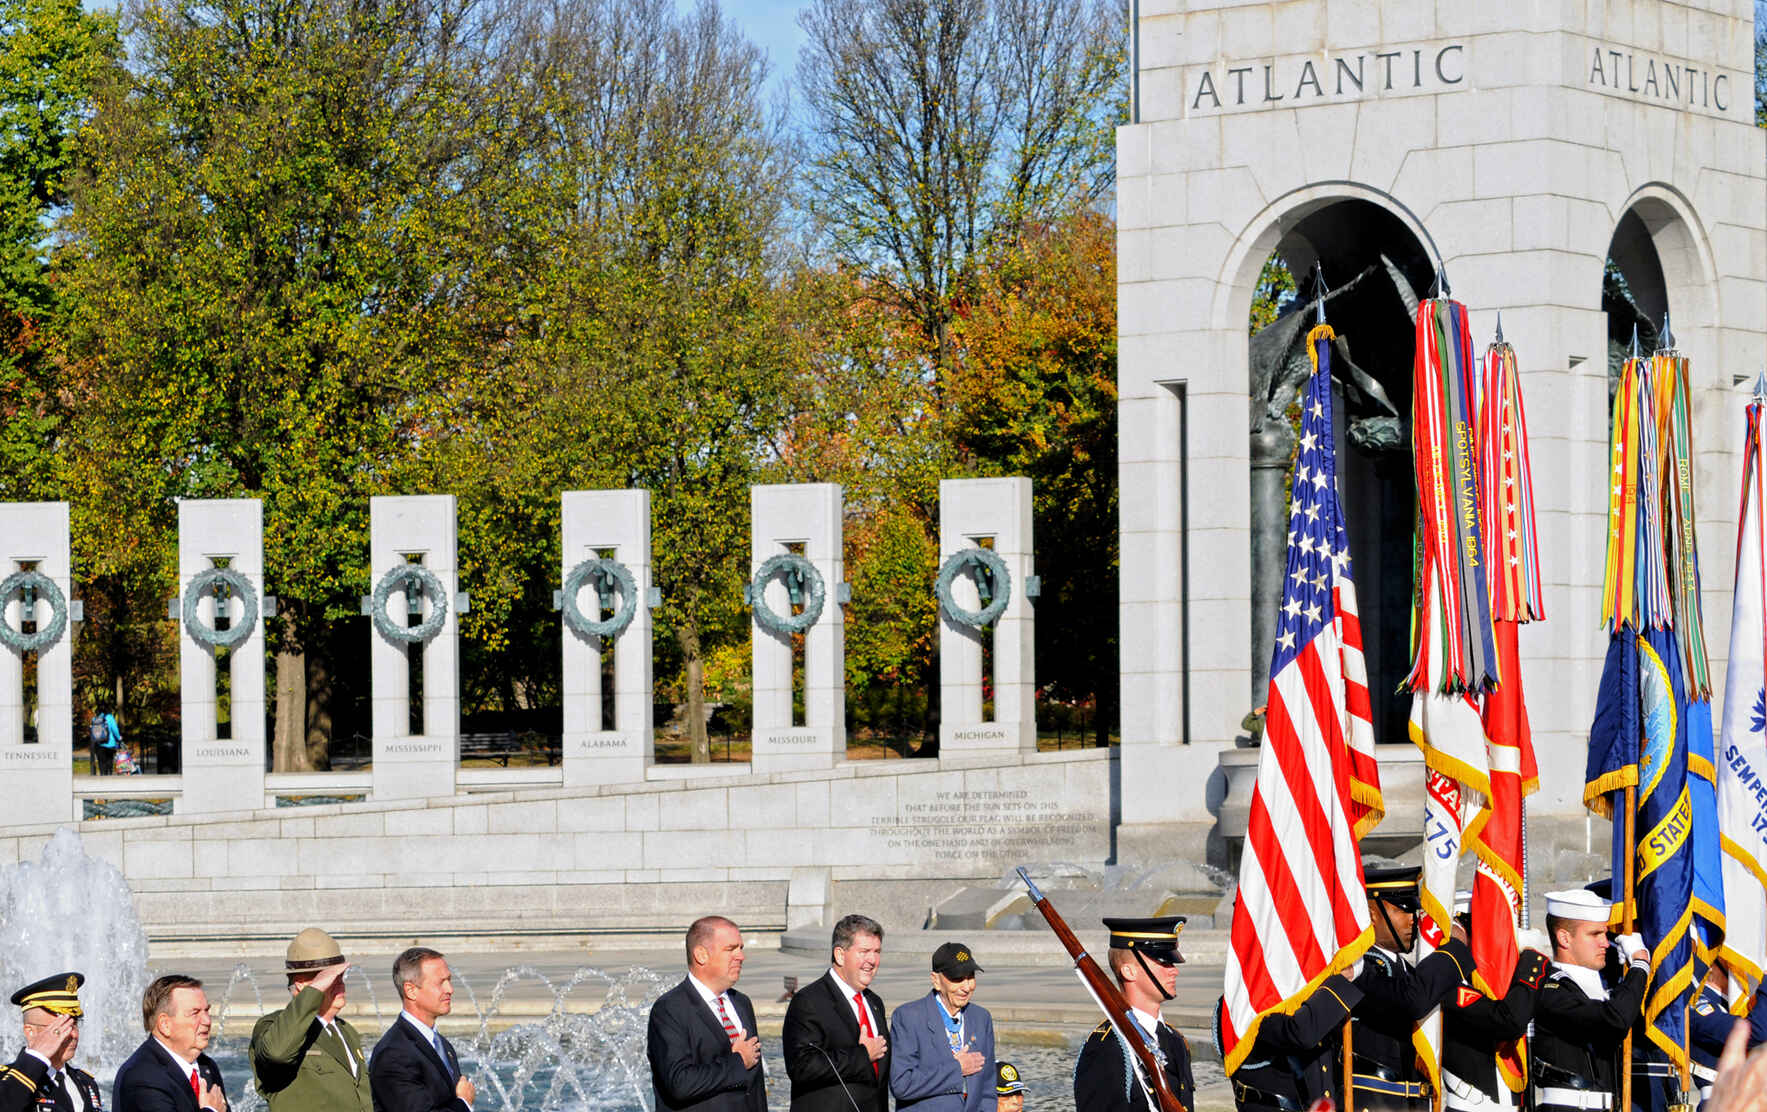 Veterans Day at the WWII Memorial image